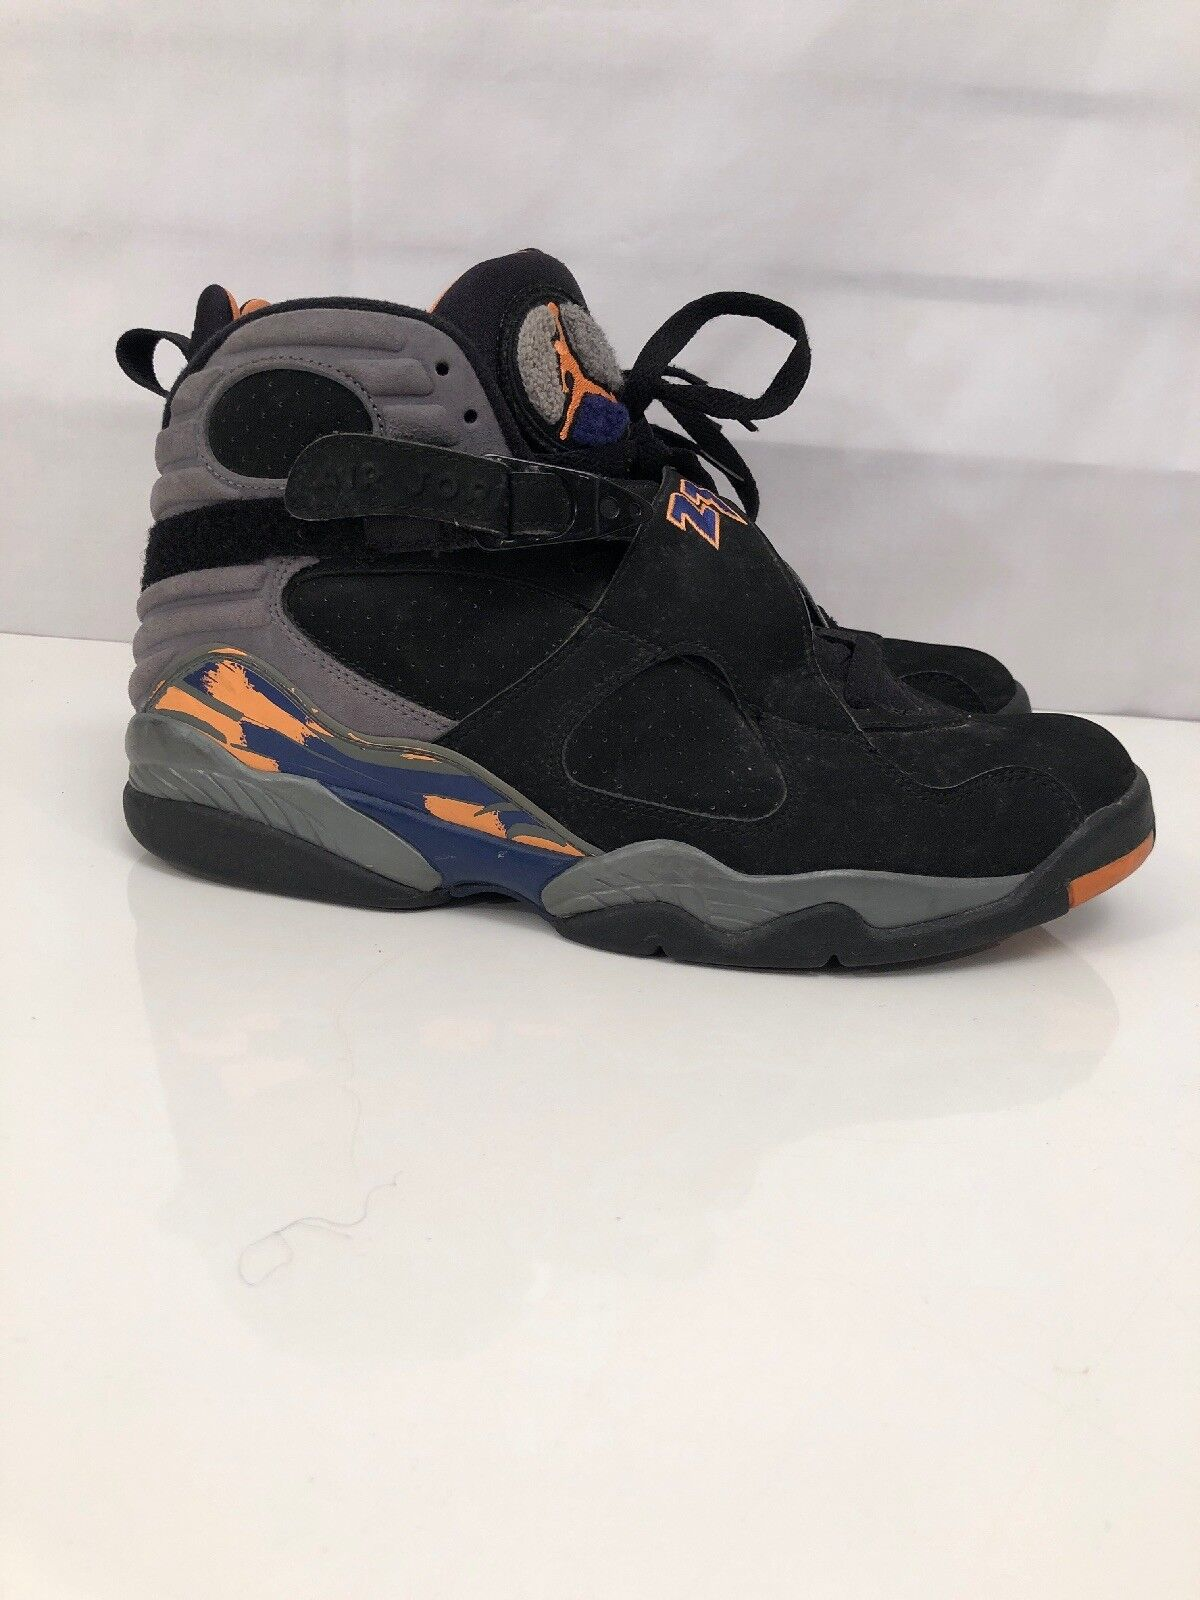 Nike Air Jordan VIII 8 Retro PHOENIX SUNS BLACK orange 305381-043 Size 12 Mens